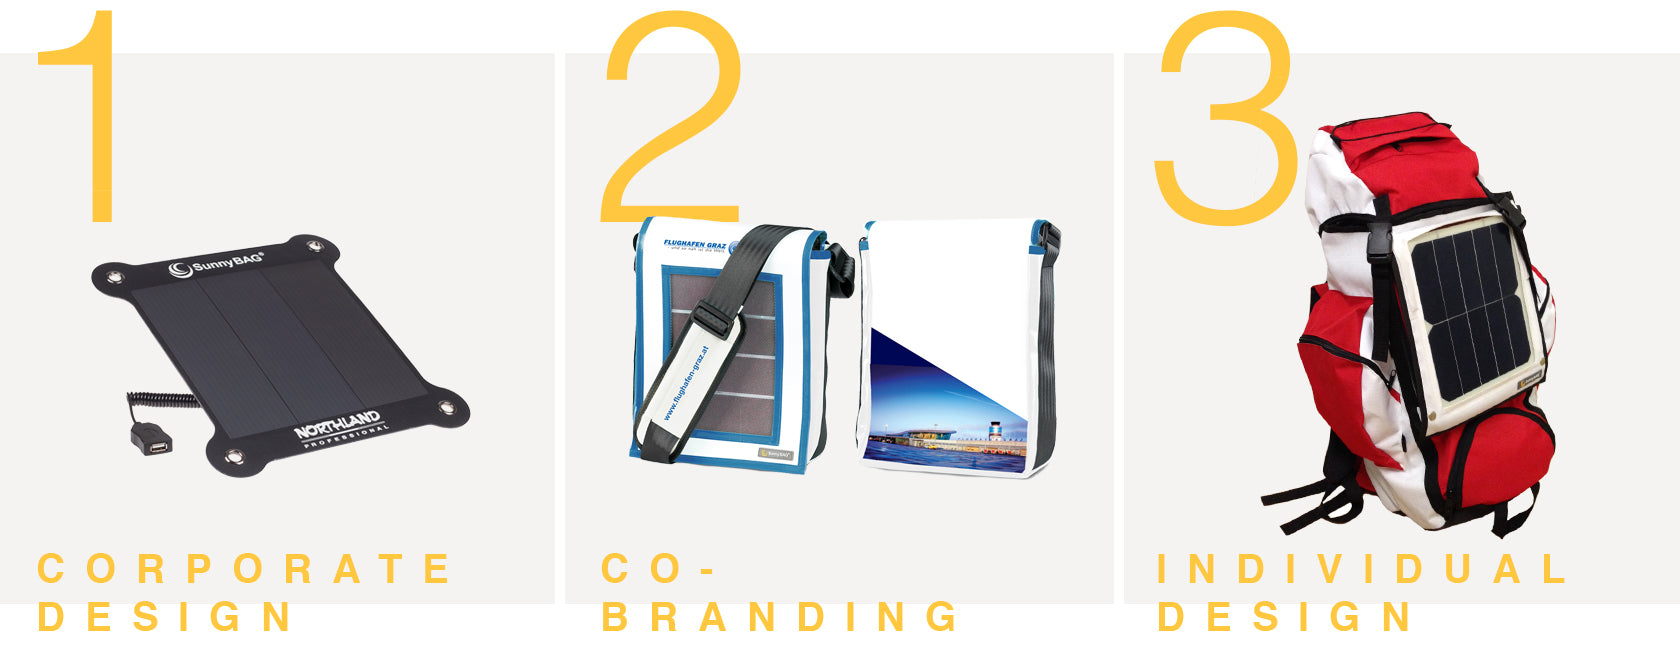 3 Branding-Varianten: Corporate Design, Co-Branding & individual Design